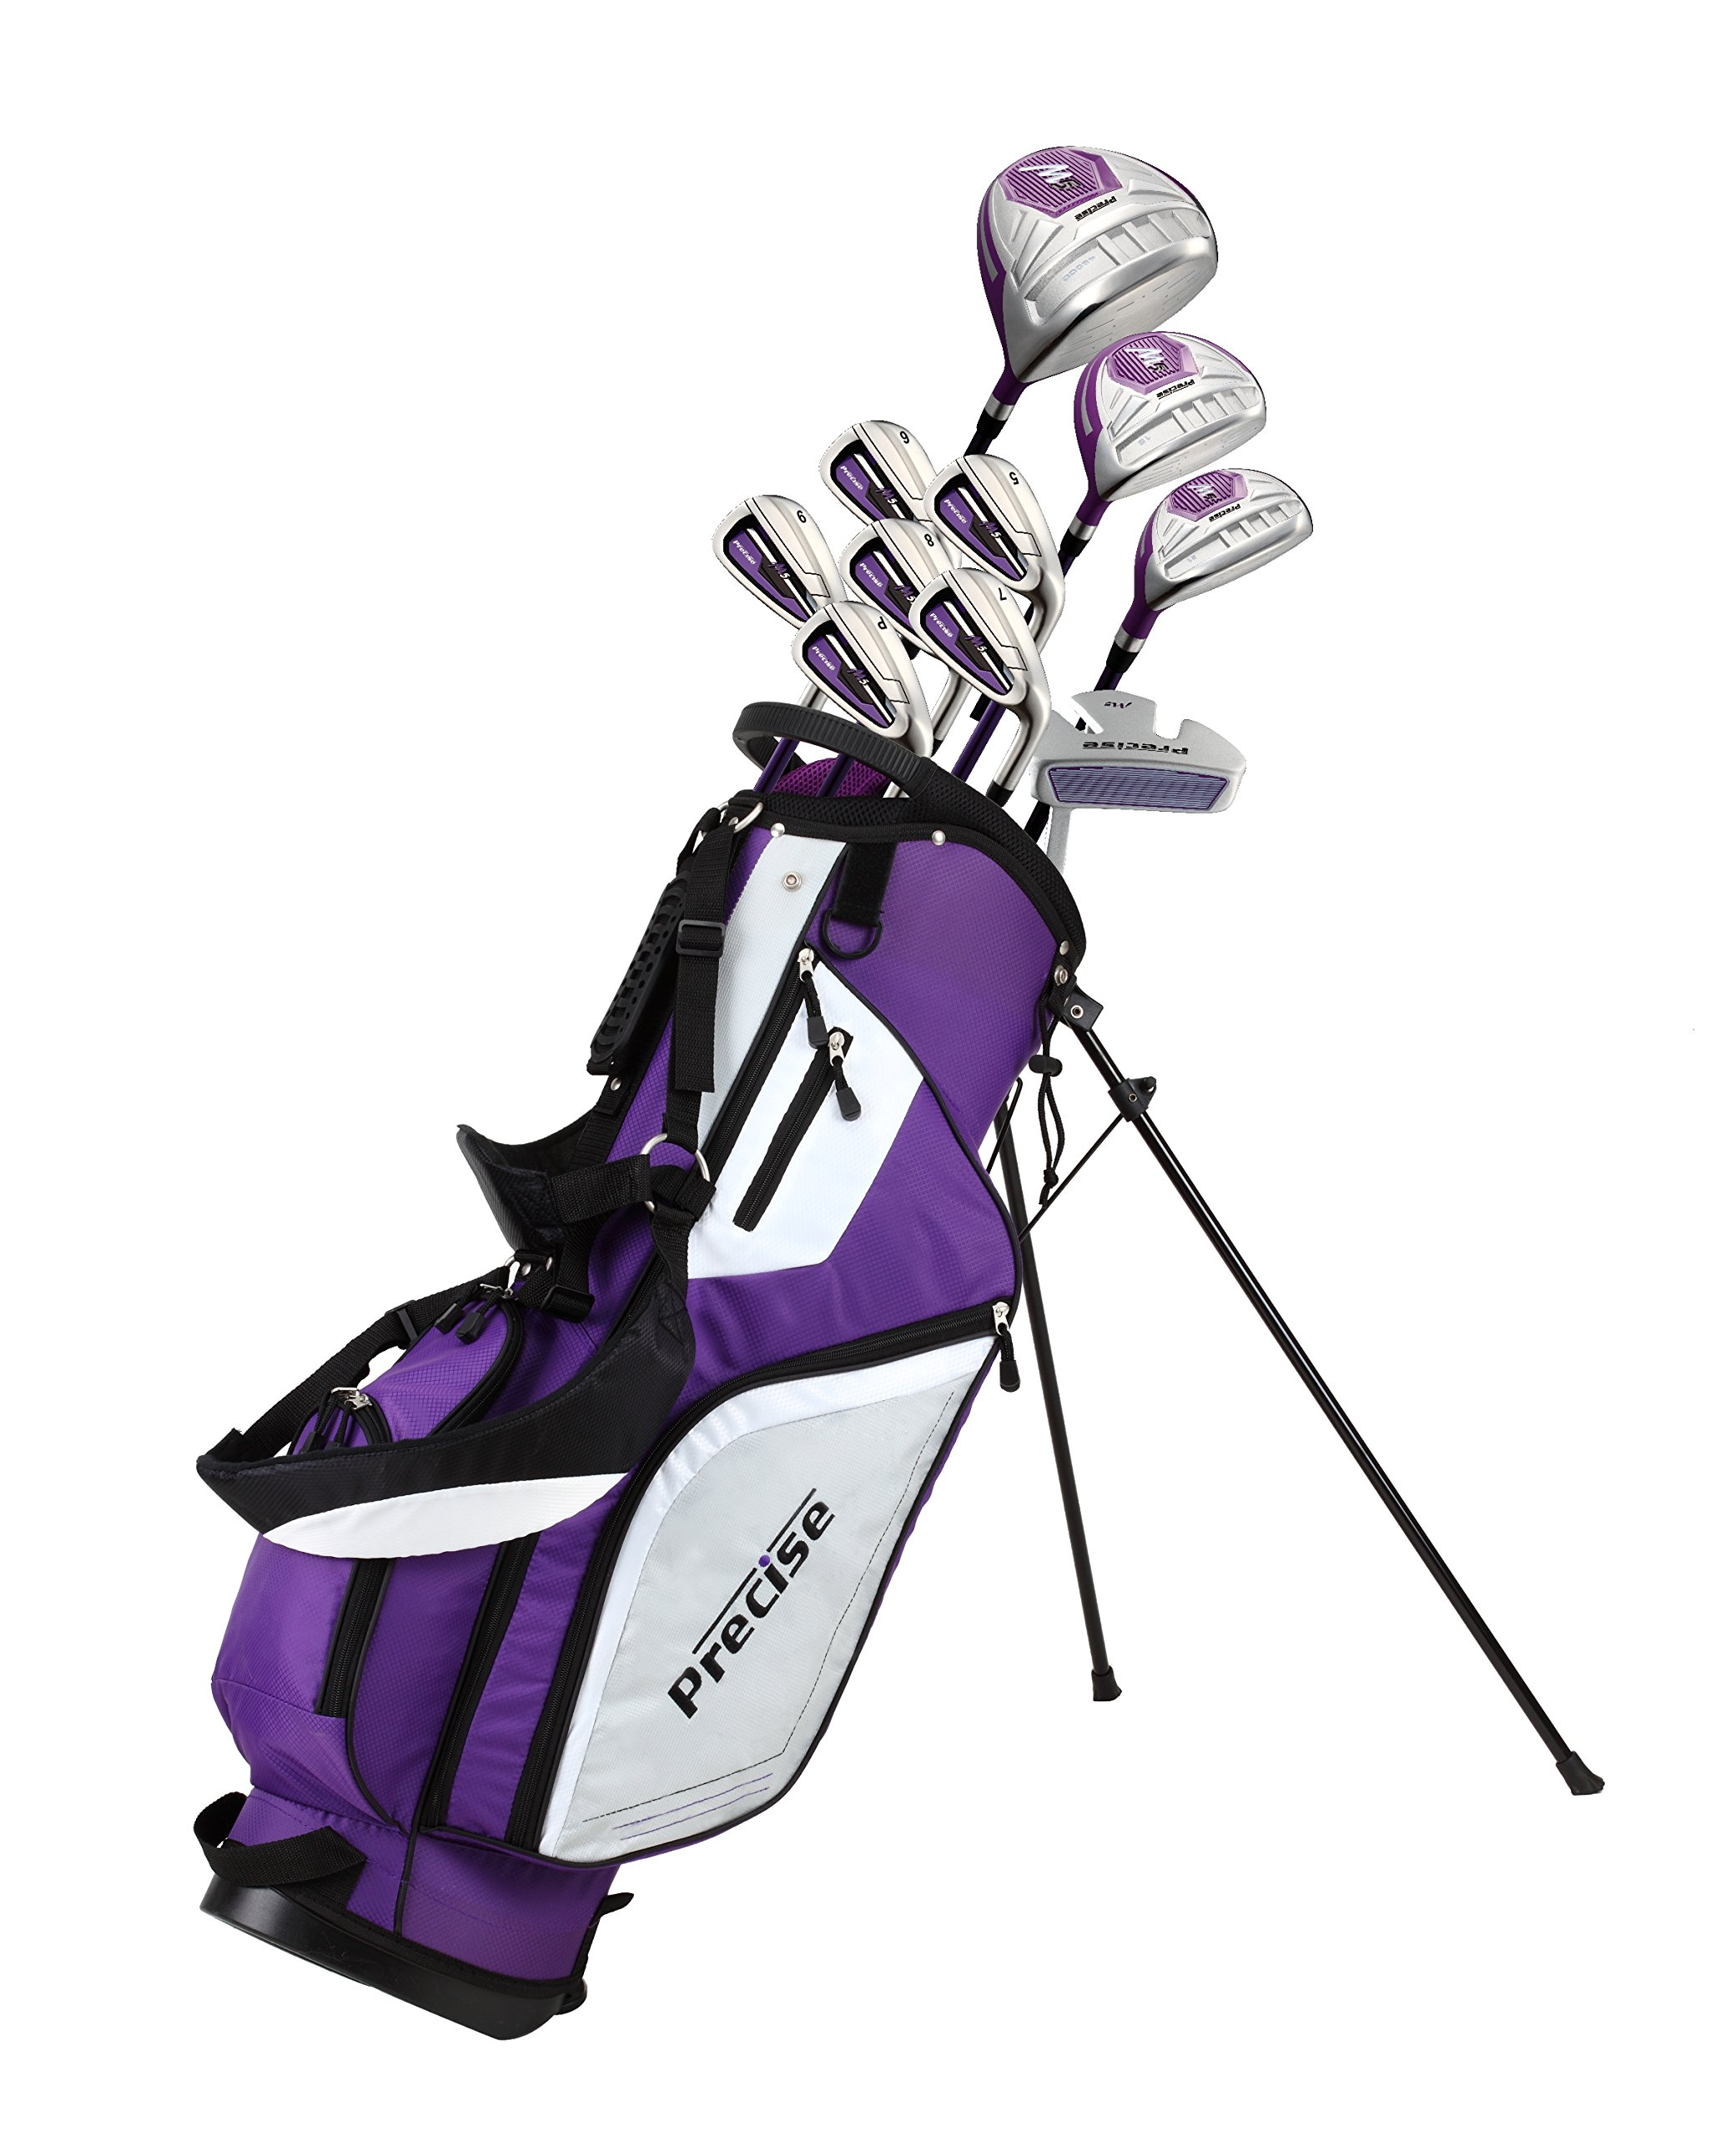 Precise M5 Ladies Womens Complete Right Handed Golf Clubs Set Includes Titanium Driver, S.S. Fairway, S.S. Hybrid, S.S. 5-PW Irons, Putter, Stand Bag, 3 H/C's Purple (Right Hand Petite Size -1'') by PreciseGolf Co. (Image #1)